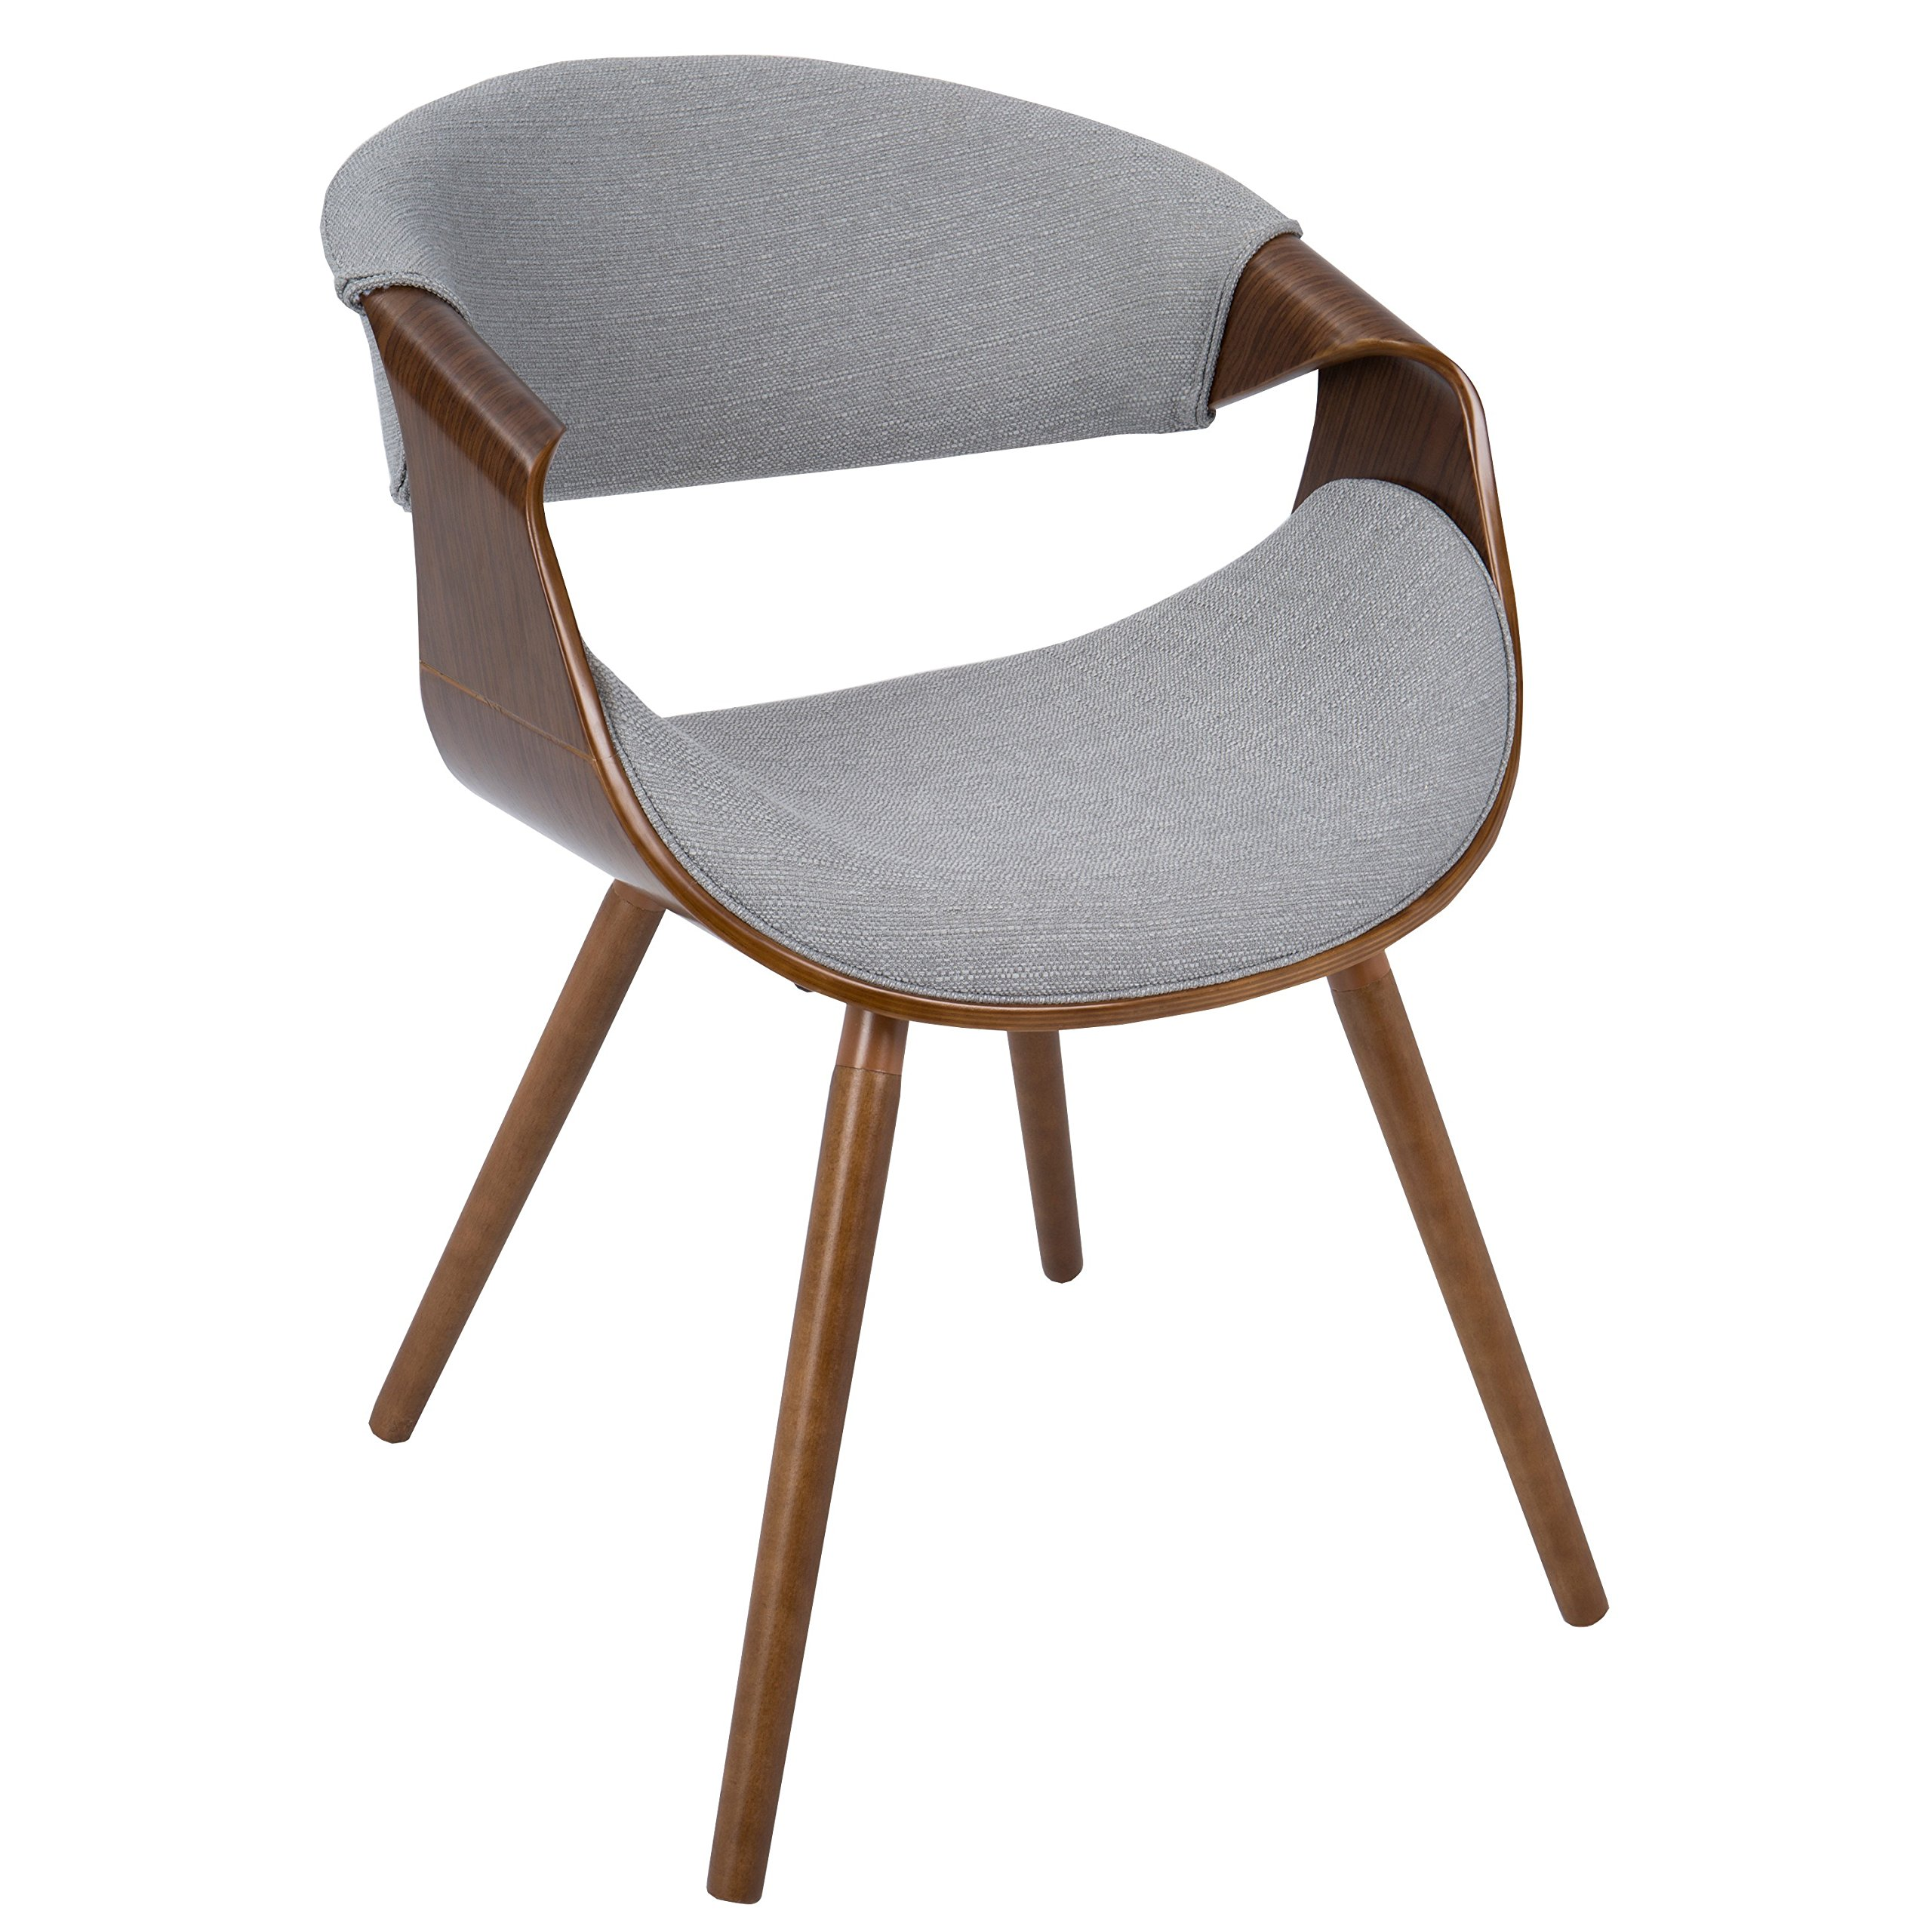 Modern Wooden Dining Room Chairs Mid Century Modern Retro Flair Legs Curved Back Accent